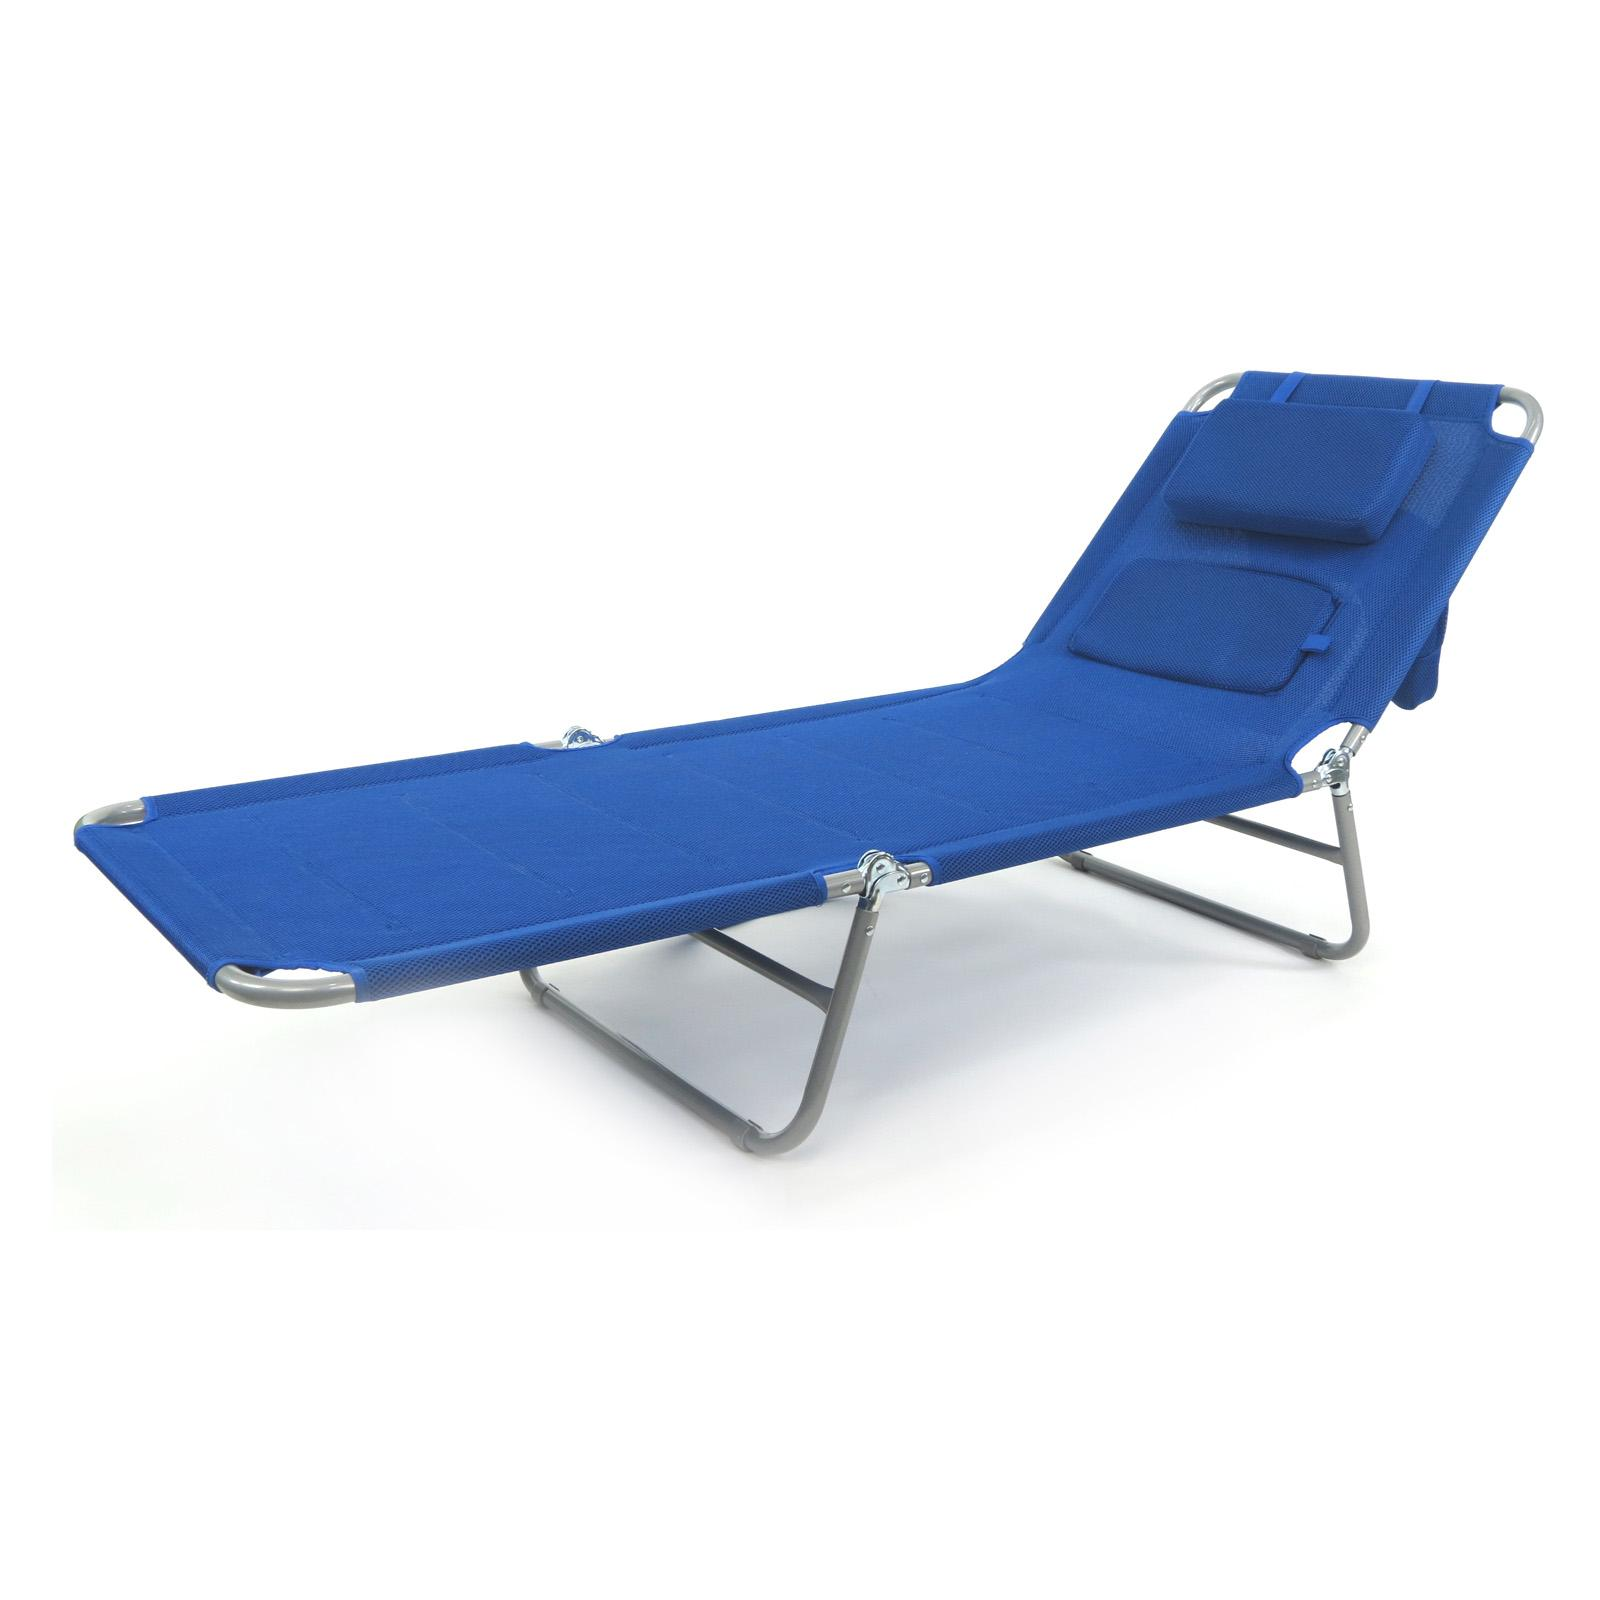 Outdoor Ergo Lounger Lady Beach Lounger - 14279